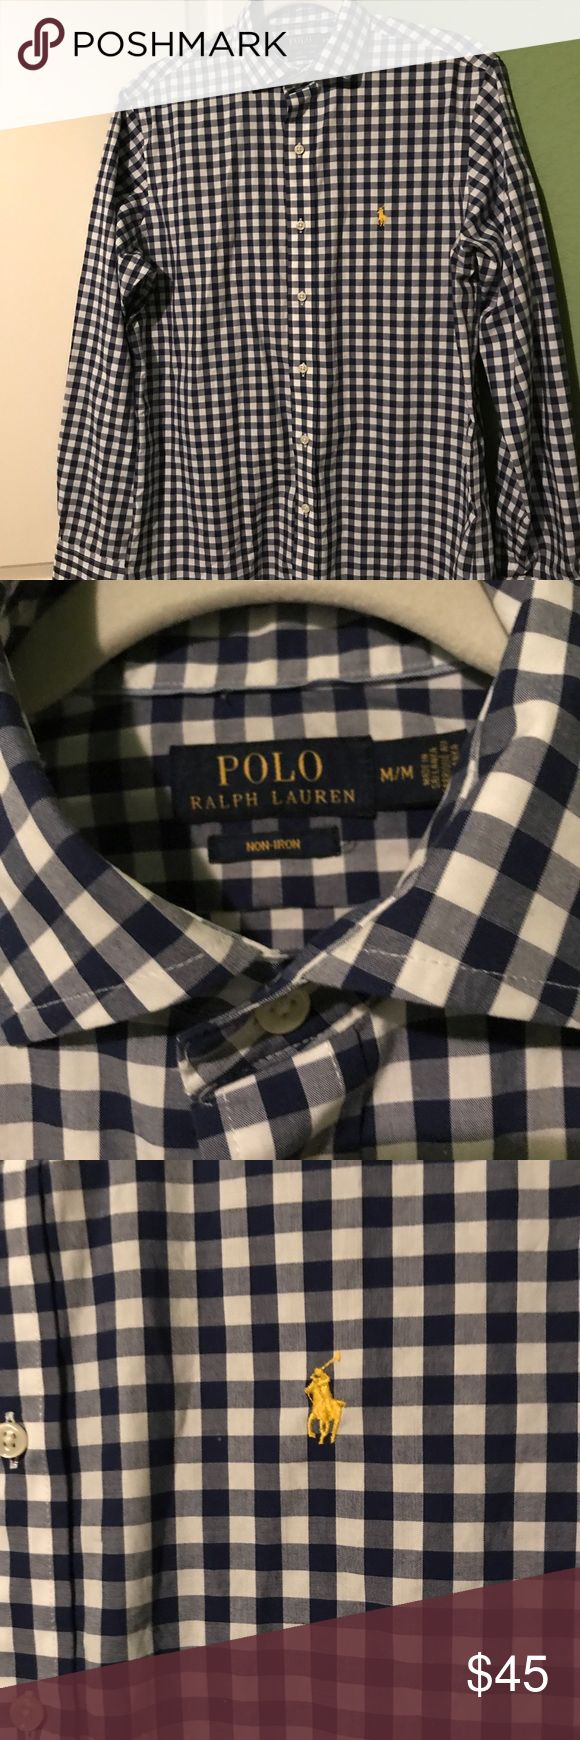 Men's Ralph Lauren Polo Dress Shirt New without tags. Bought but never worn. Size medium. Classic Fit. Look stylish without paying full price. Bundle for deals! Polo by Ralph Lauren Shirts Dress Shirts